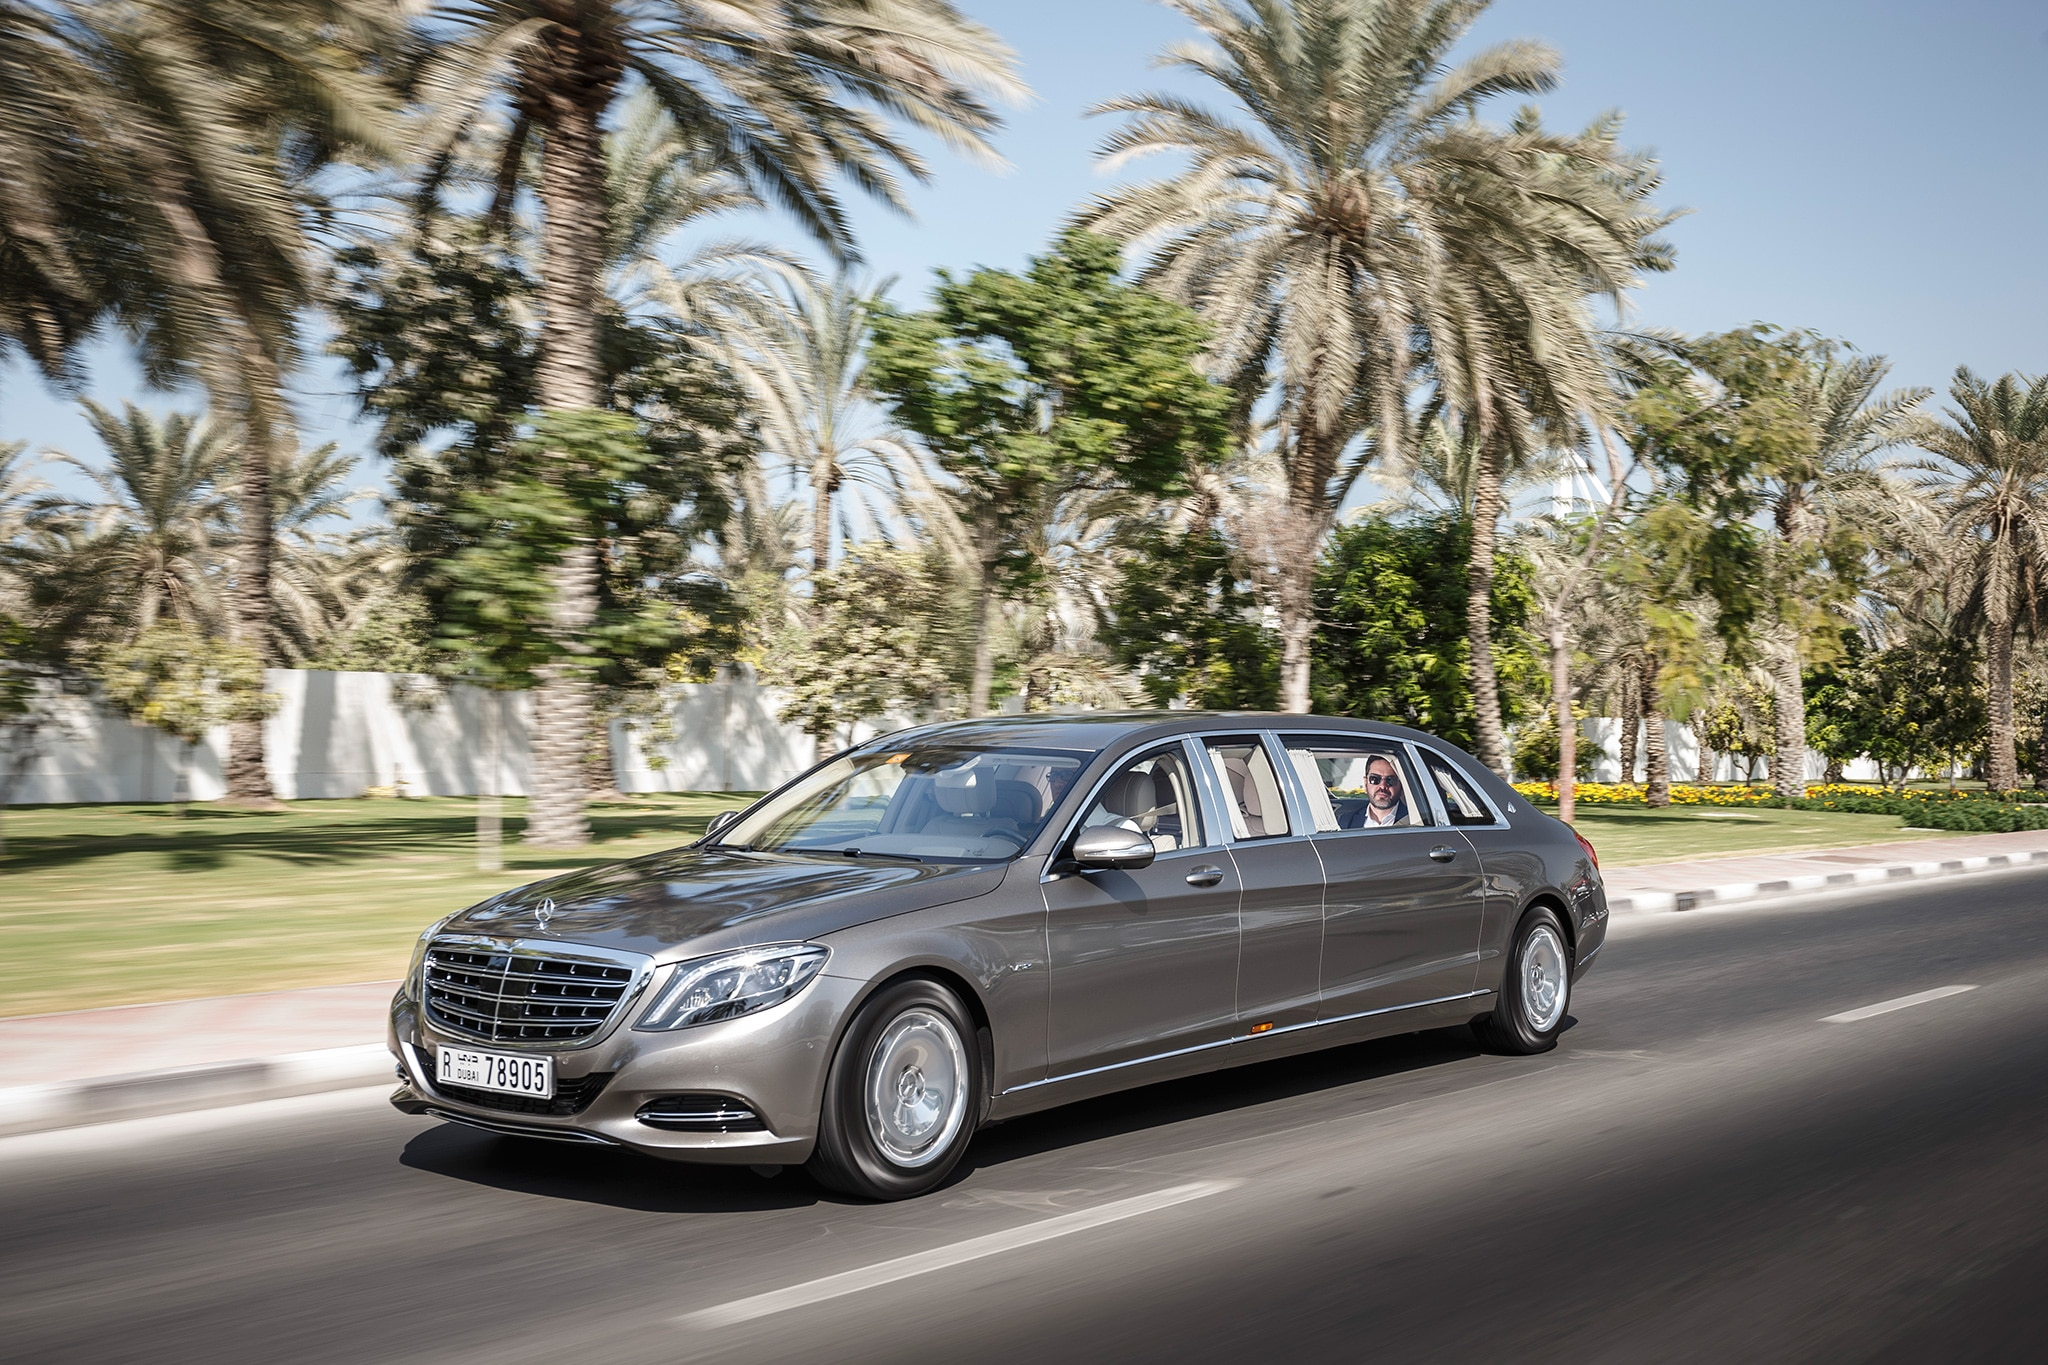 http://st.automobilemag.com/uploads/sites/11/2016/08/2016-Mercedes-Maybach-S600-Pullman-front-three-quarter-in-motion-05.jpg